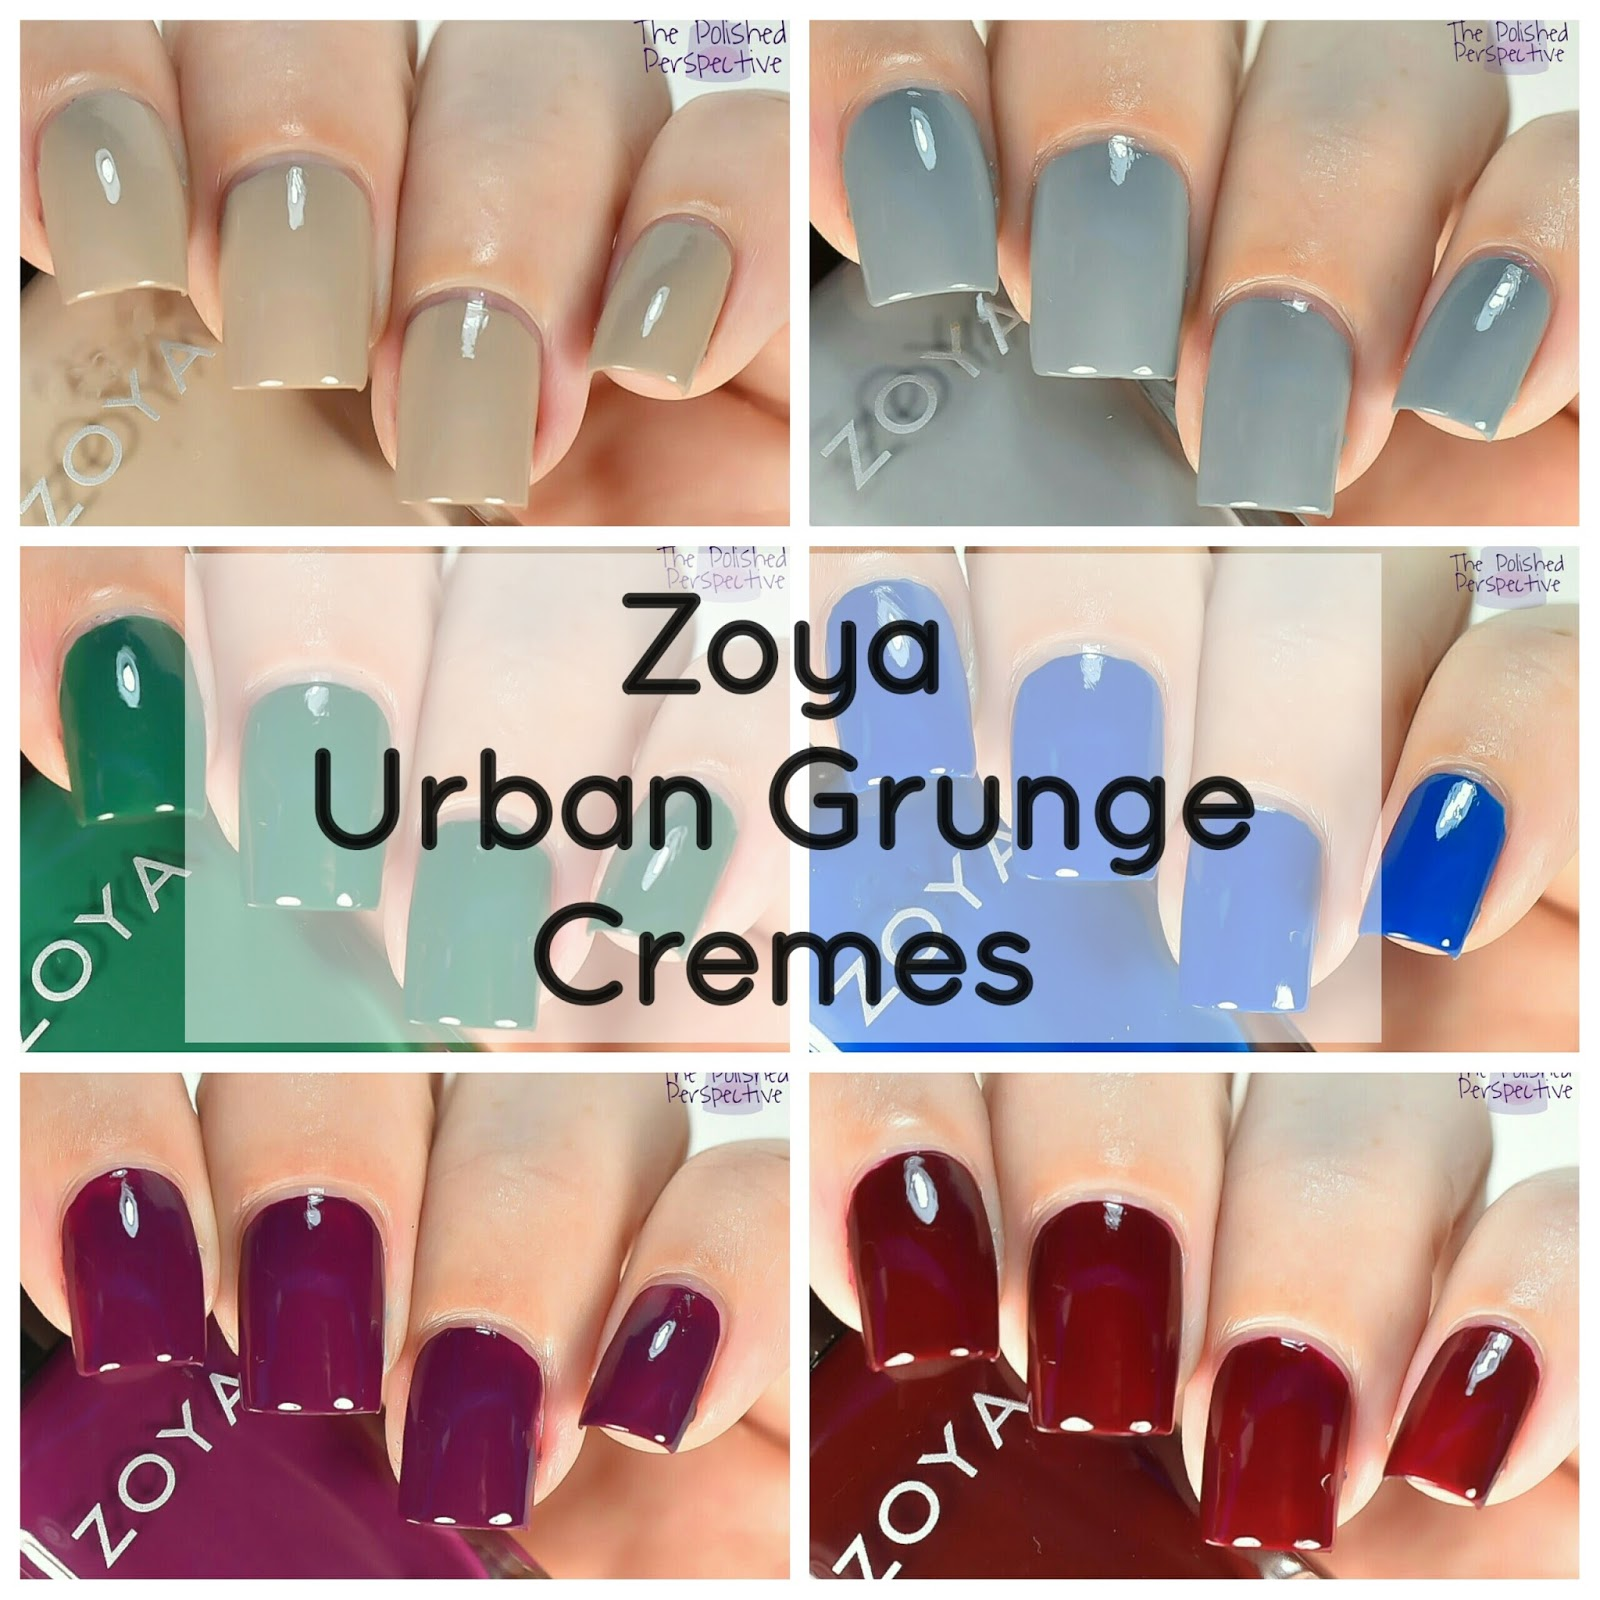 The Polished Perspective: Zoya Urban Grunge Creams: Review and ...